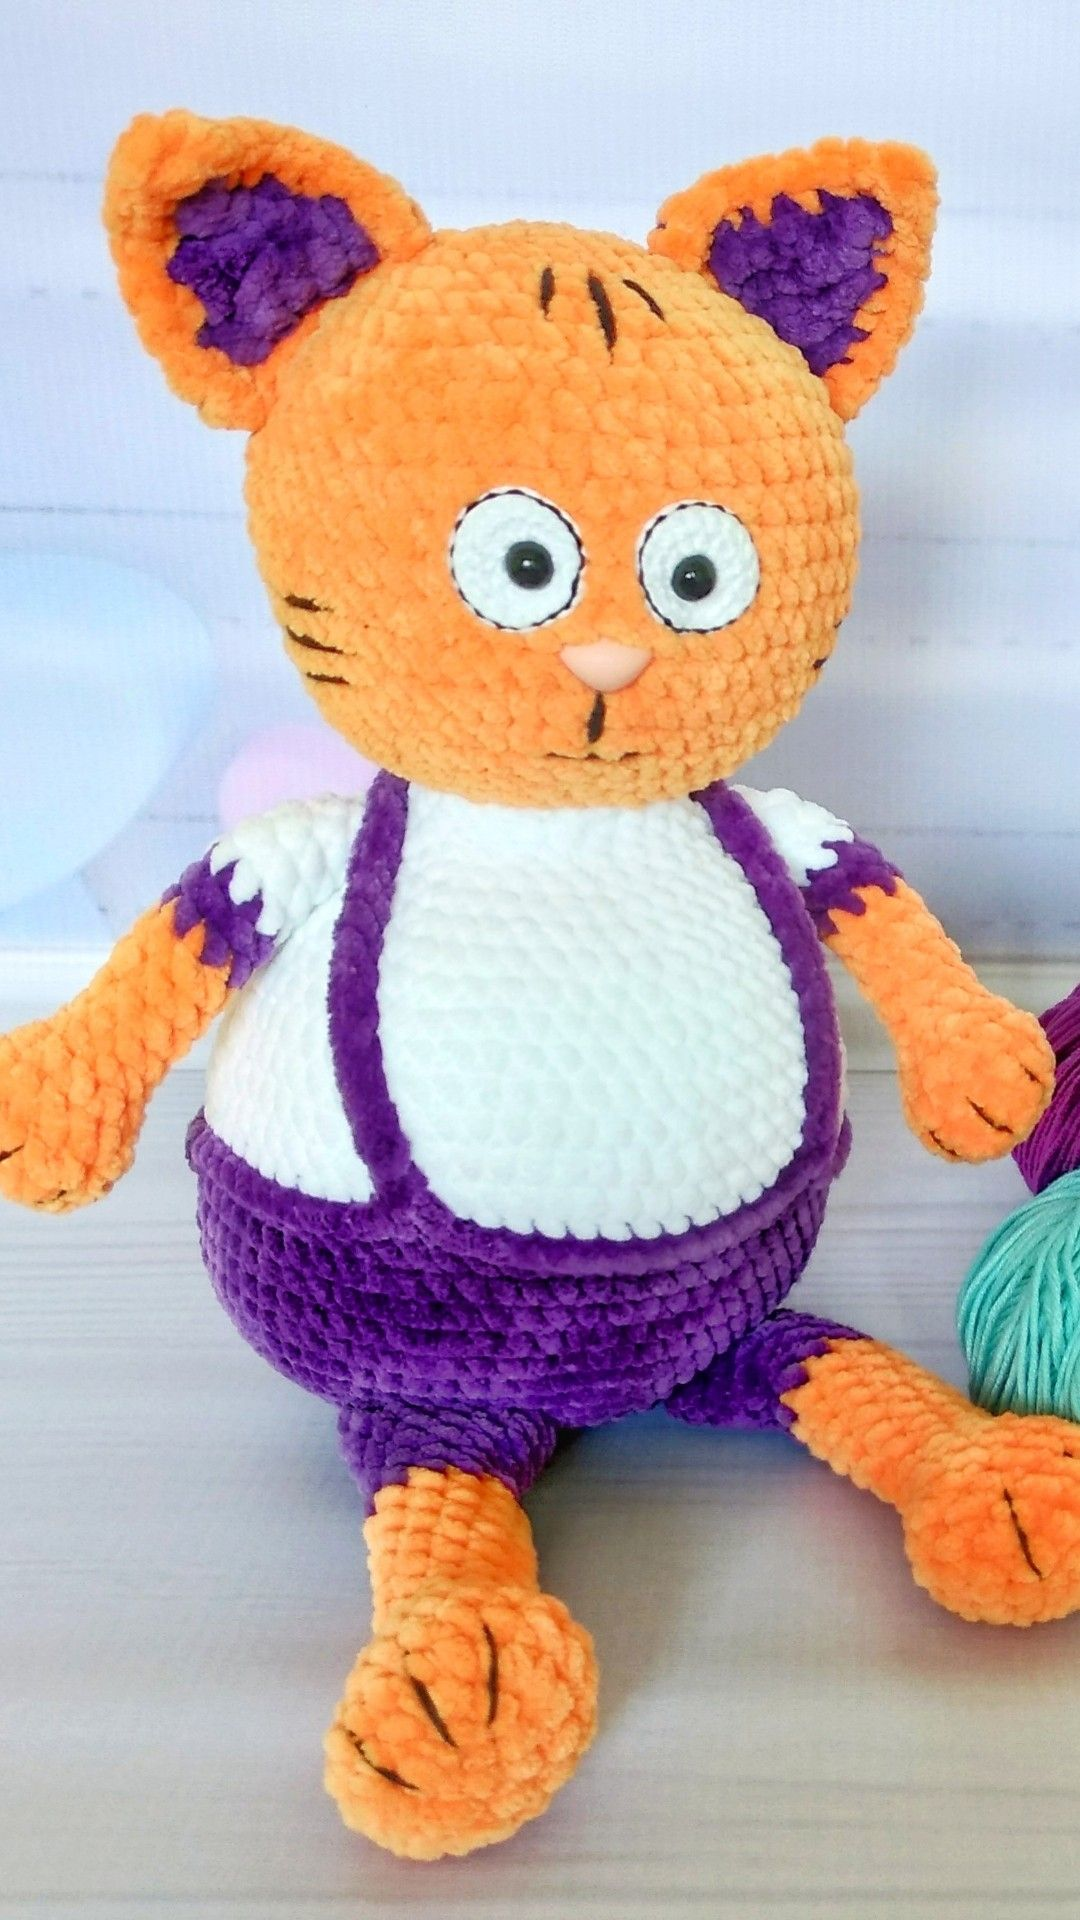 This listing is for Cute Amigurumi Cat toy. Great gift for